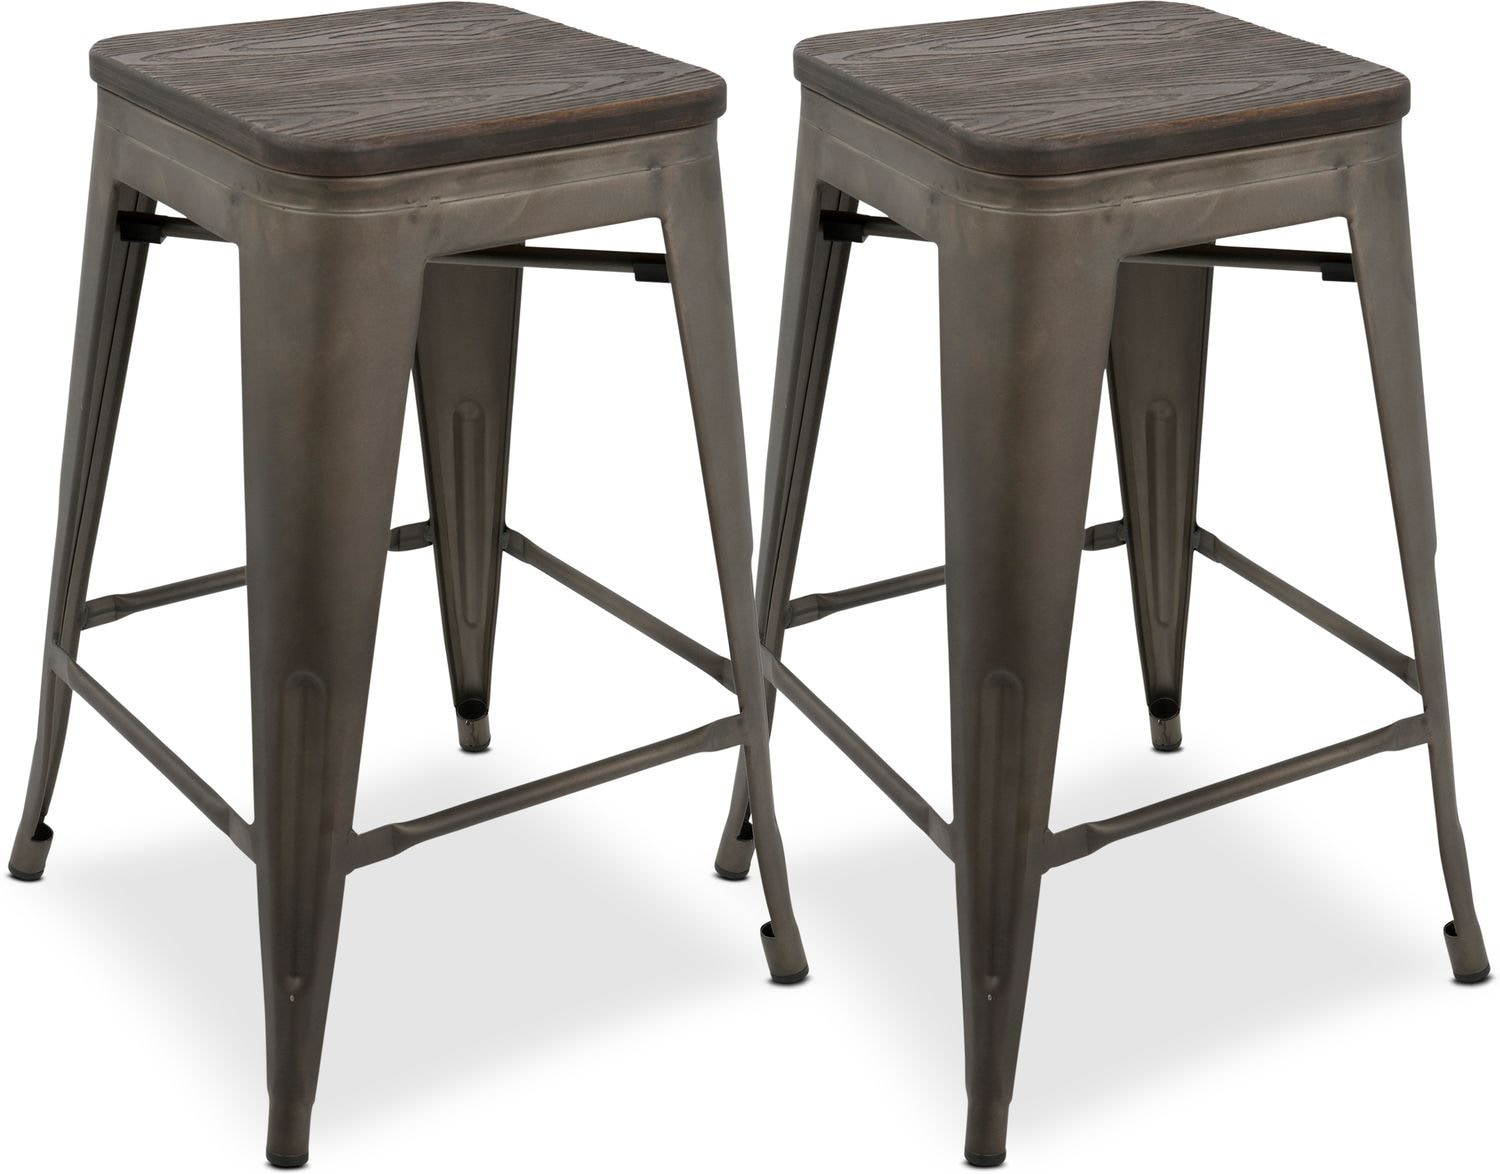 Dining Room Furniture - Dax Set of 2 Counter-Height Stools